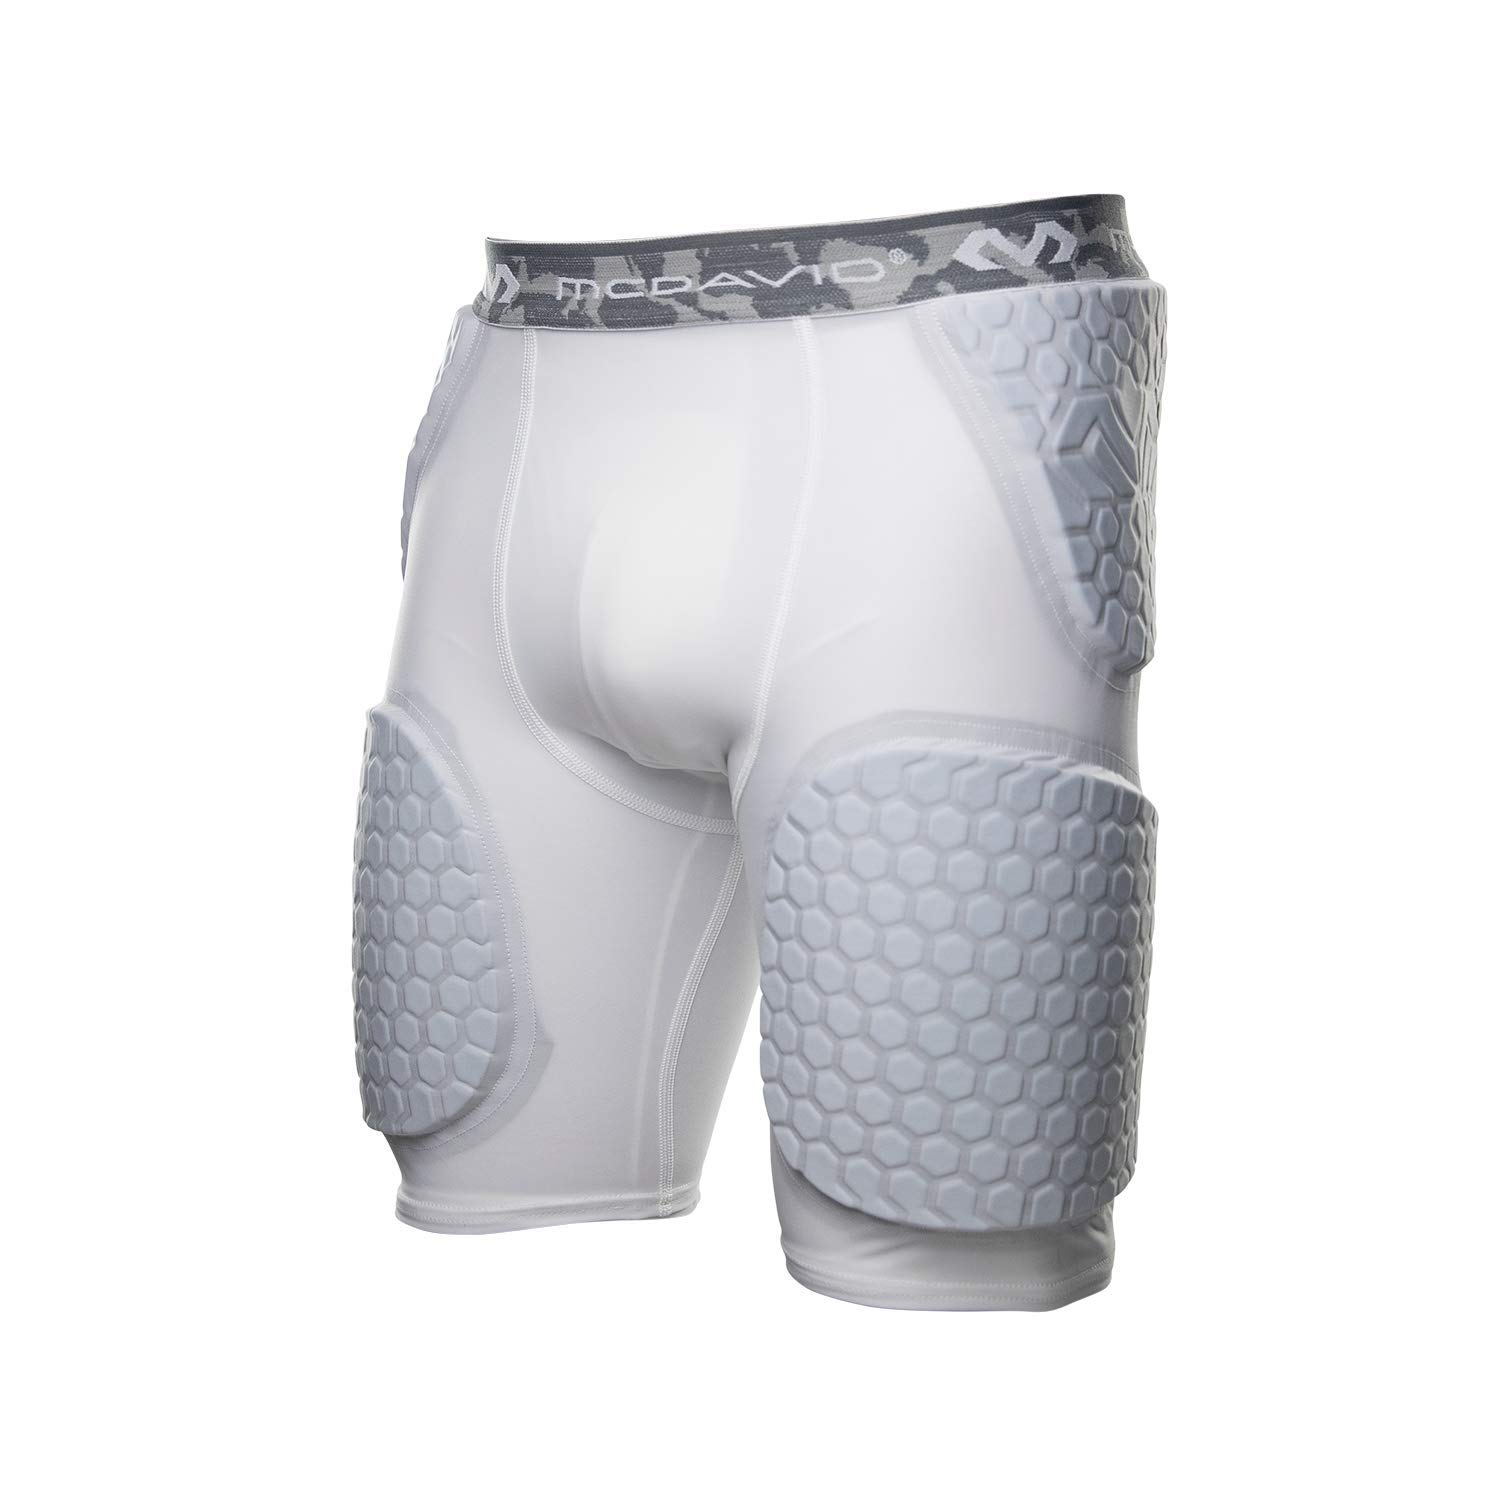 McDavid Hex Short with Contoured Wrap Around Thigh, 3X-Large, White